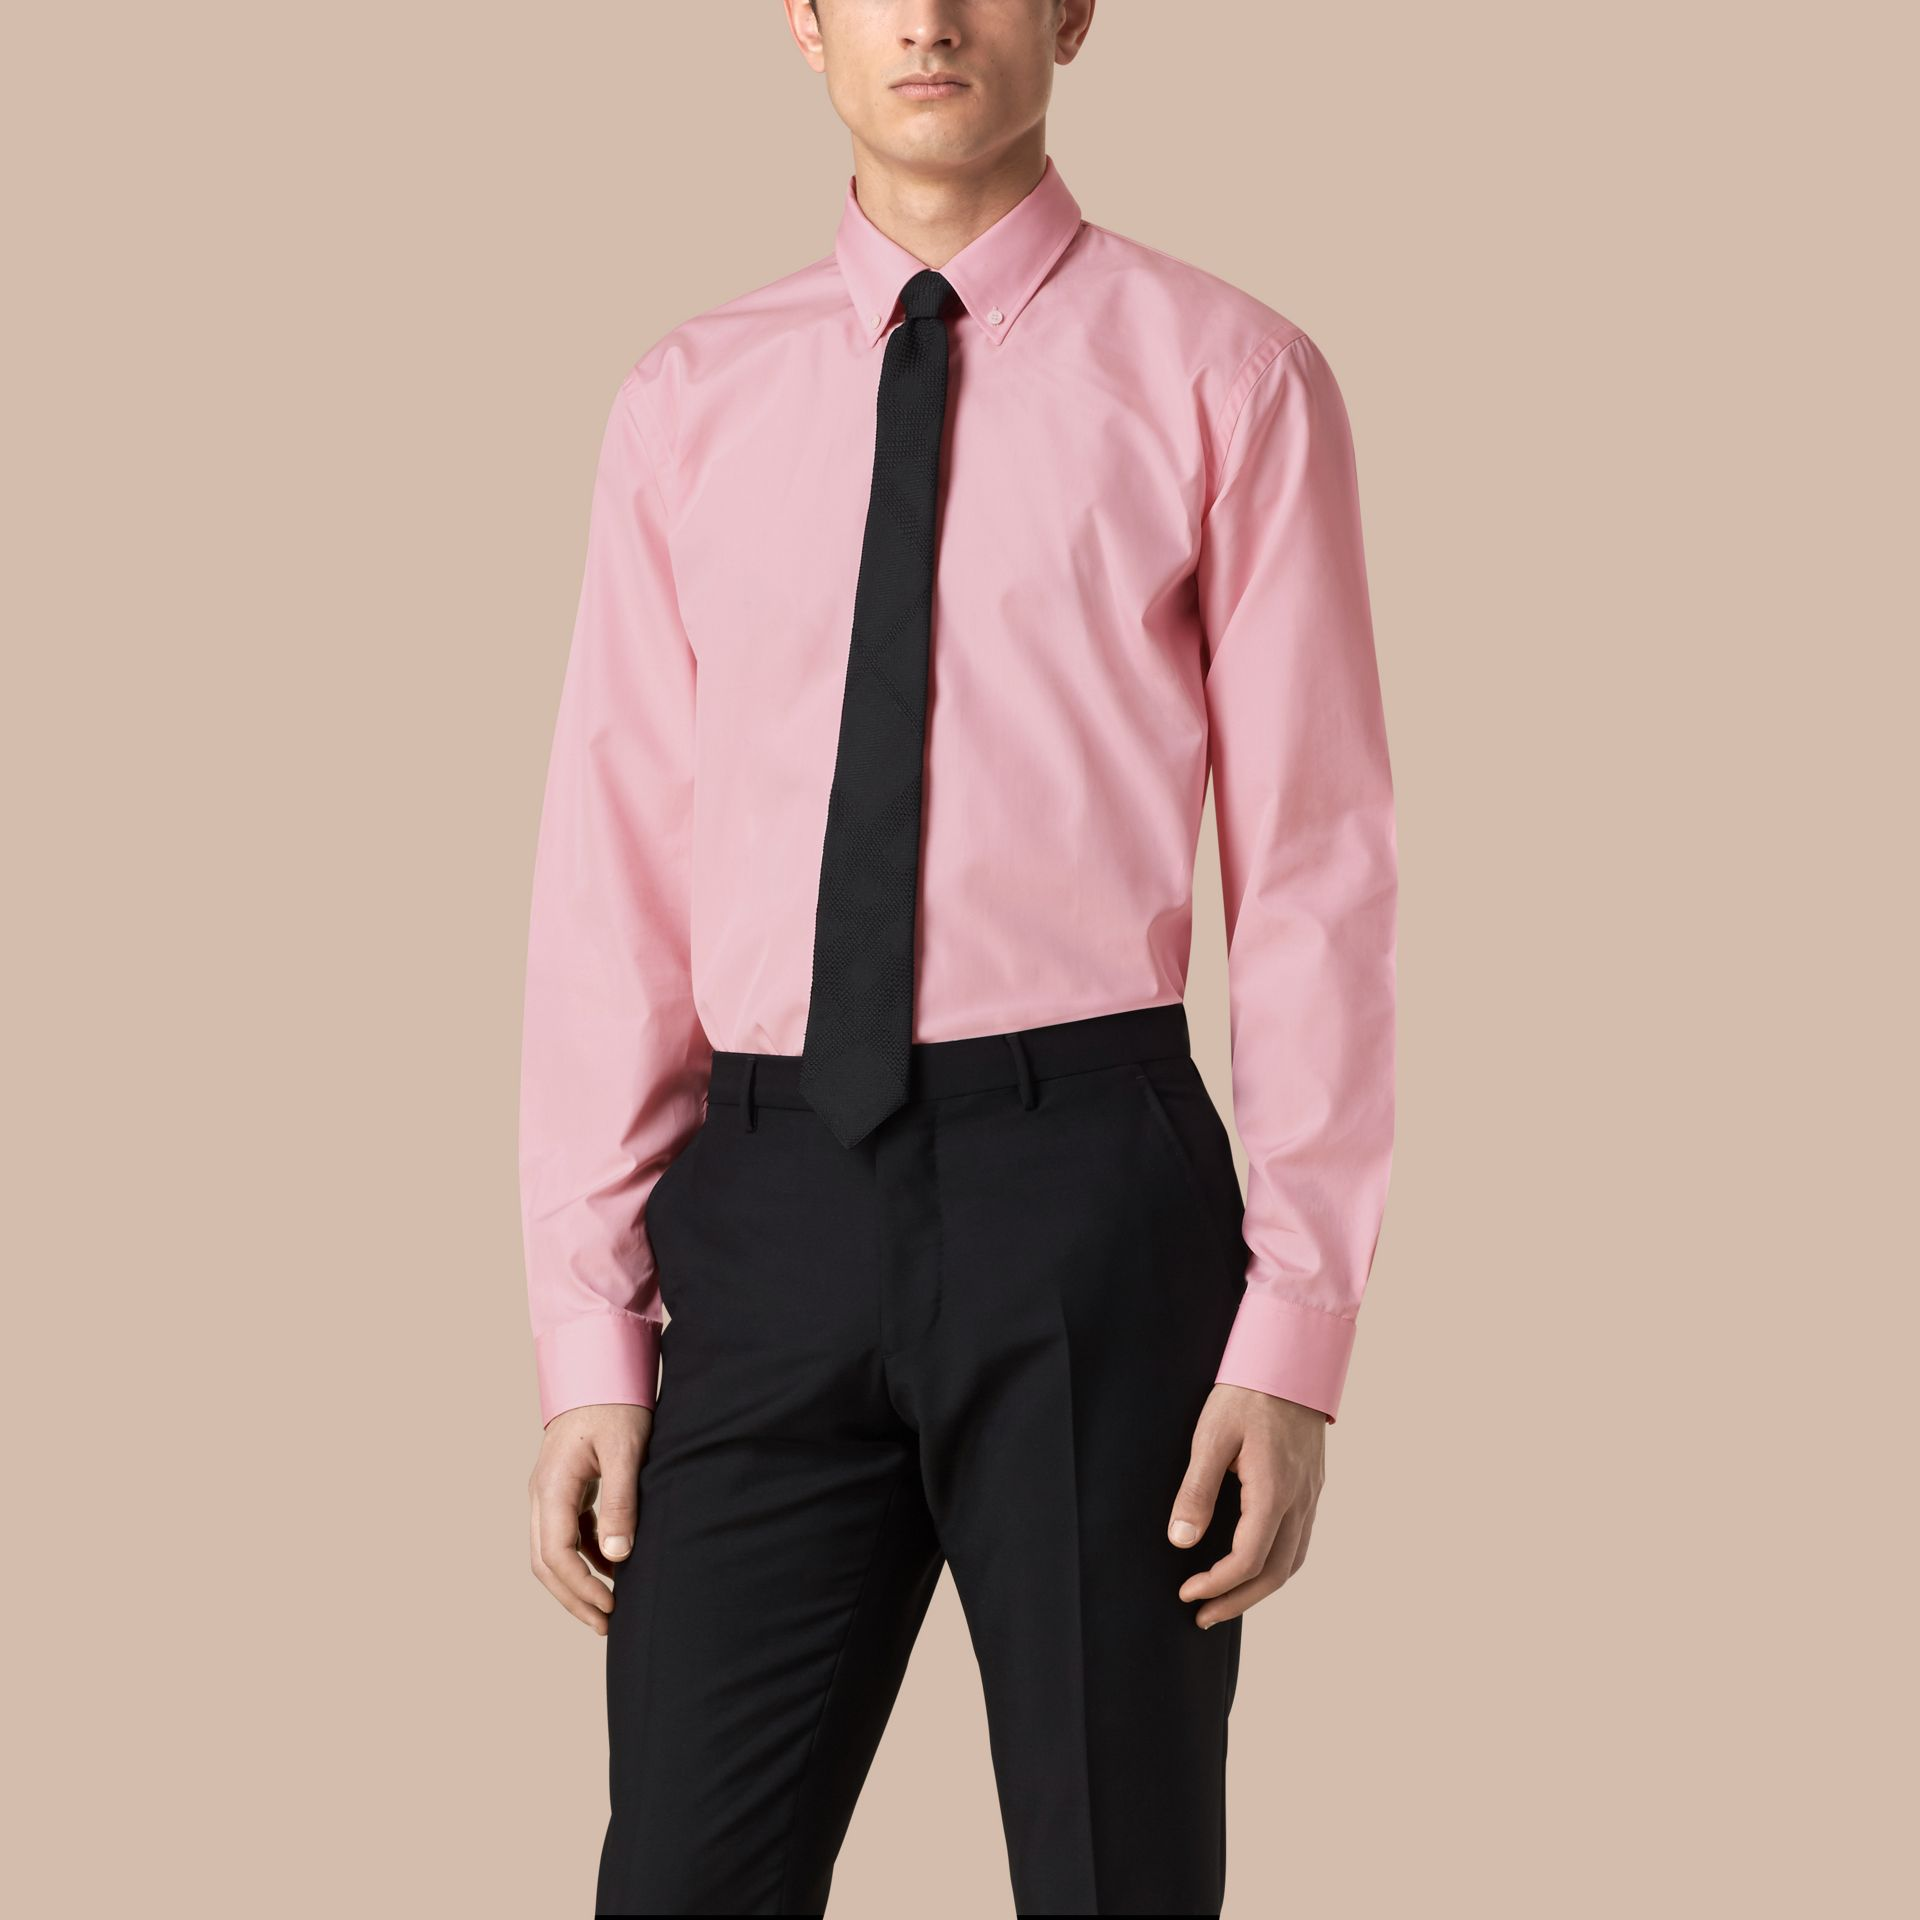 City pink Modern Fit Button-down Collar Gingham Cotton Shirt City Pink - gallery image 1